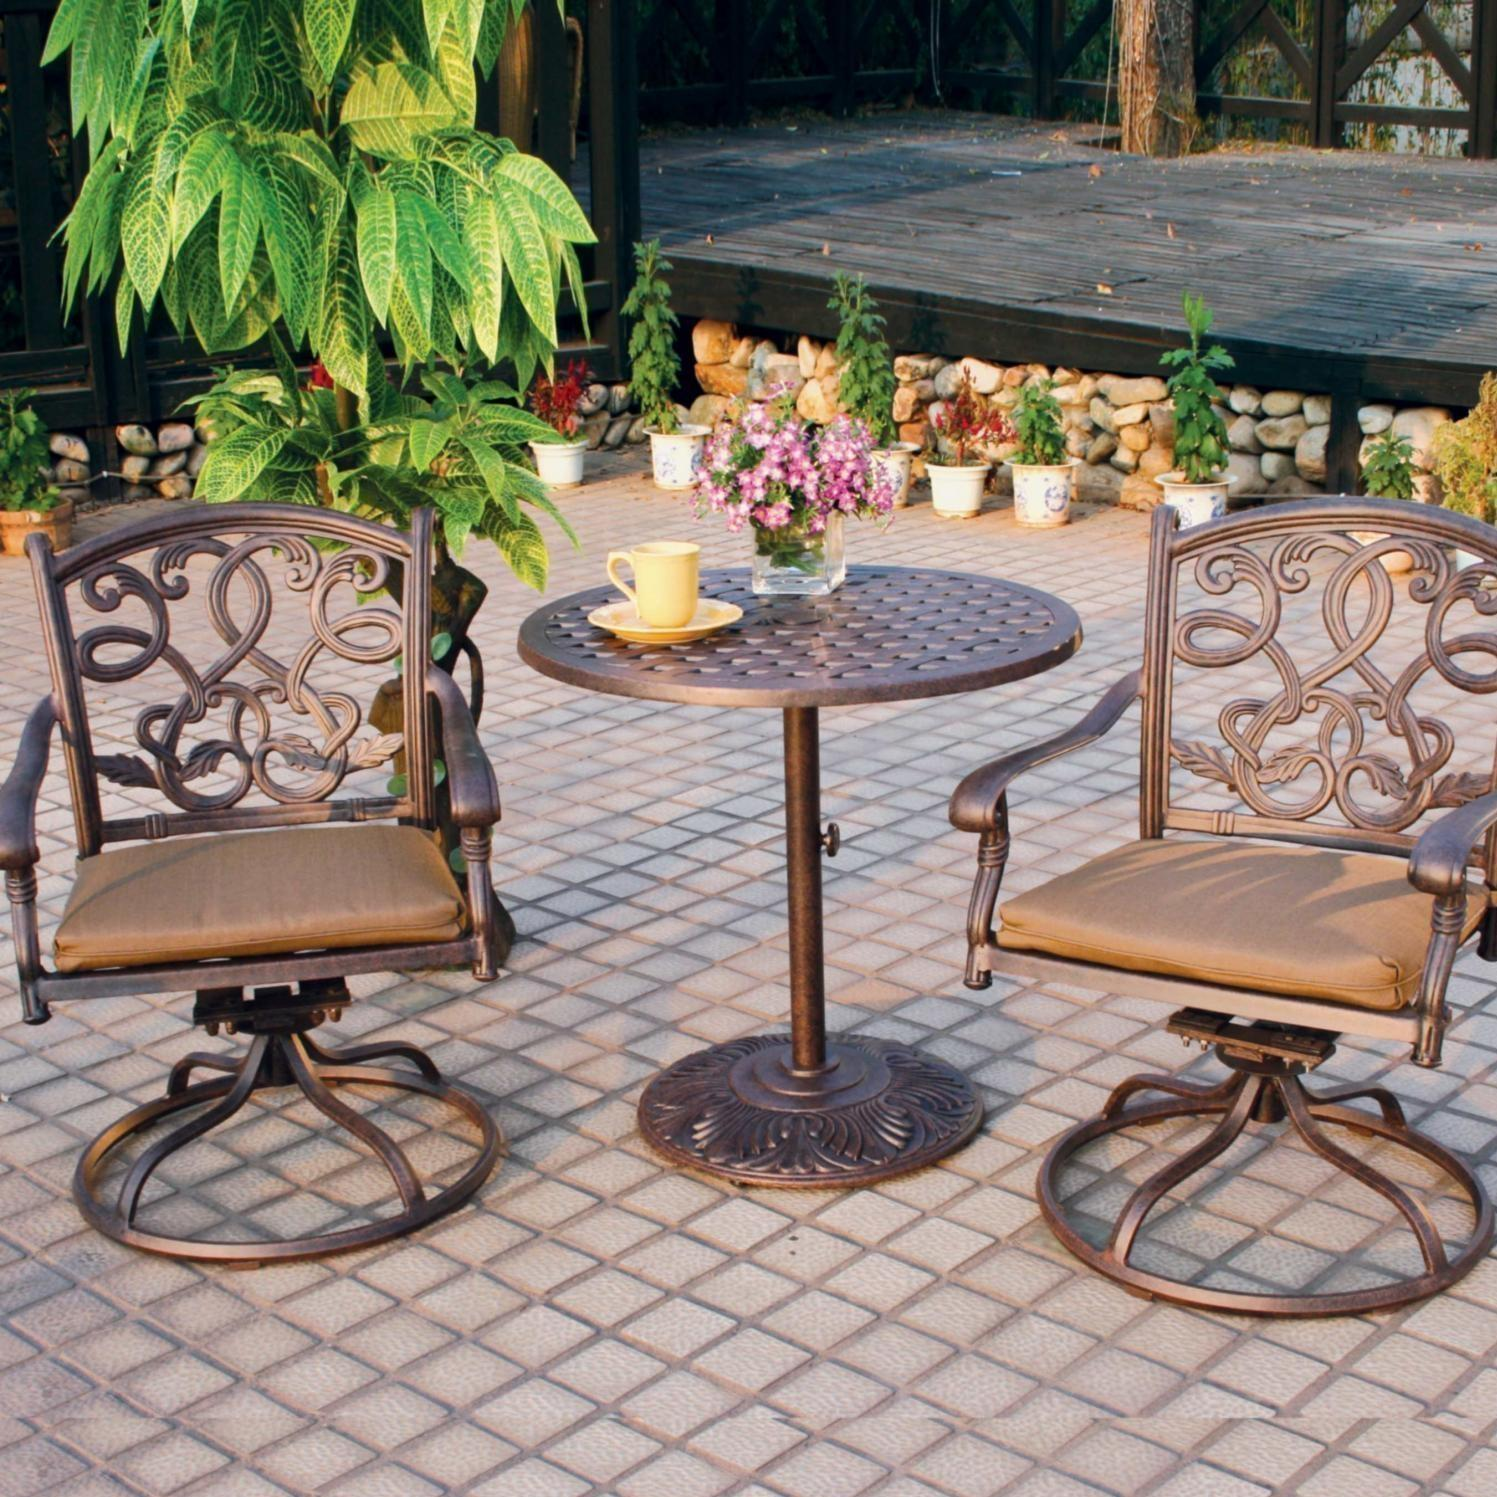 Bistro Sets darlee santa monica 3 piece patio bistro set SYAEUSM